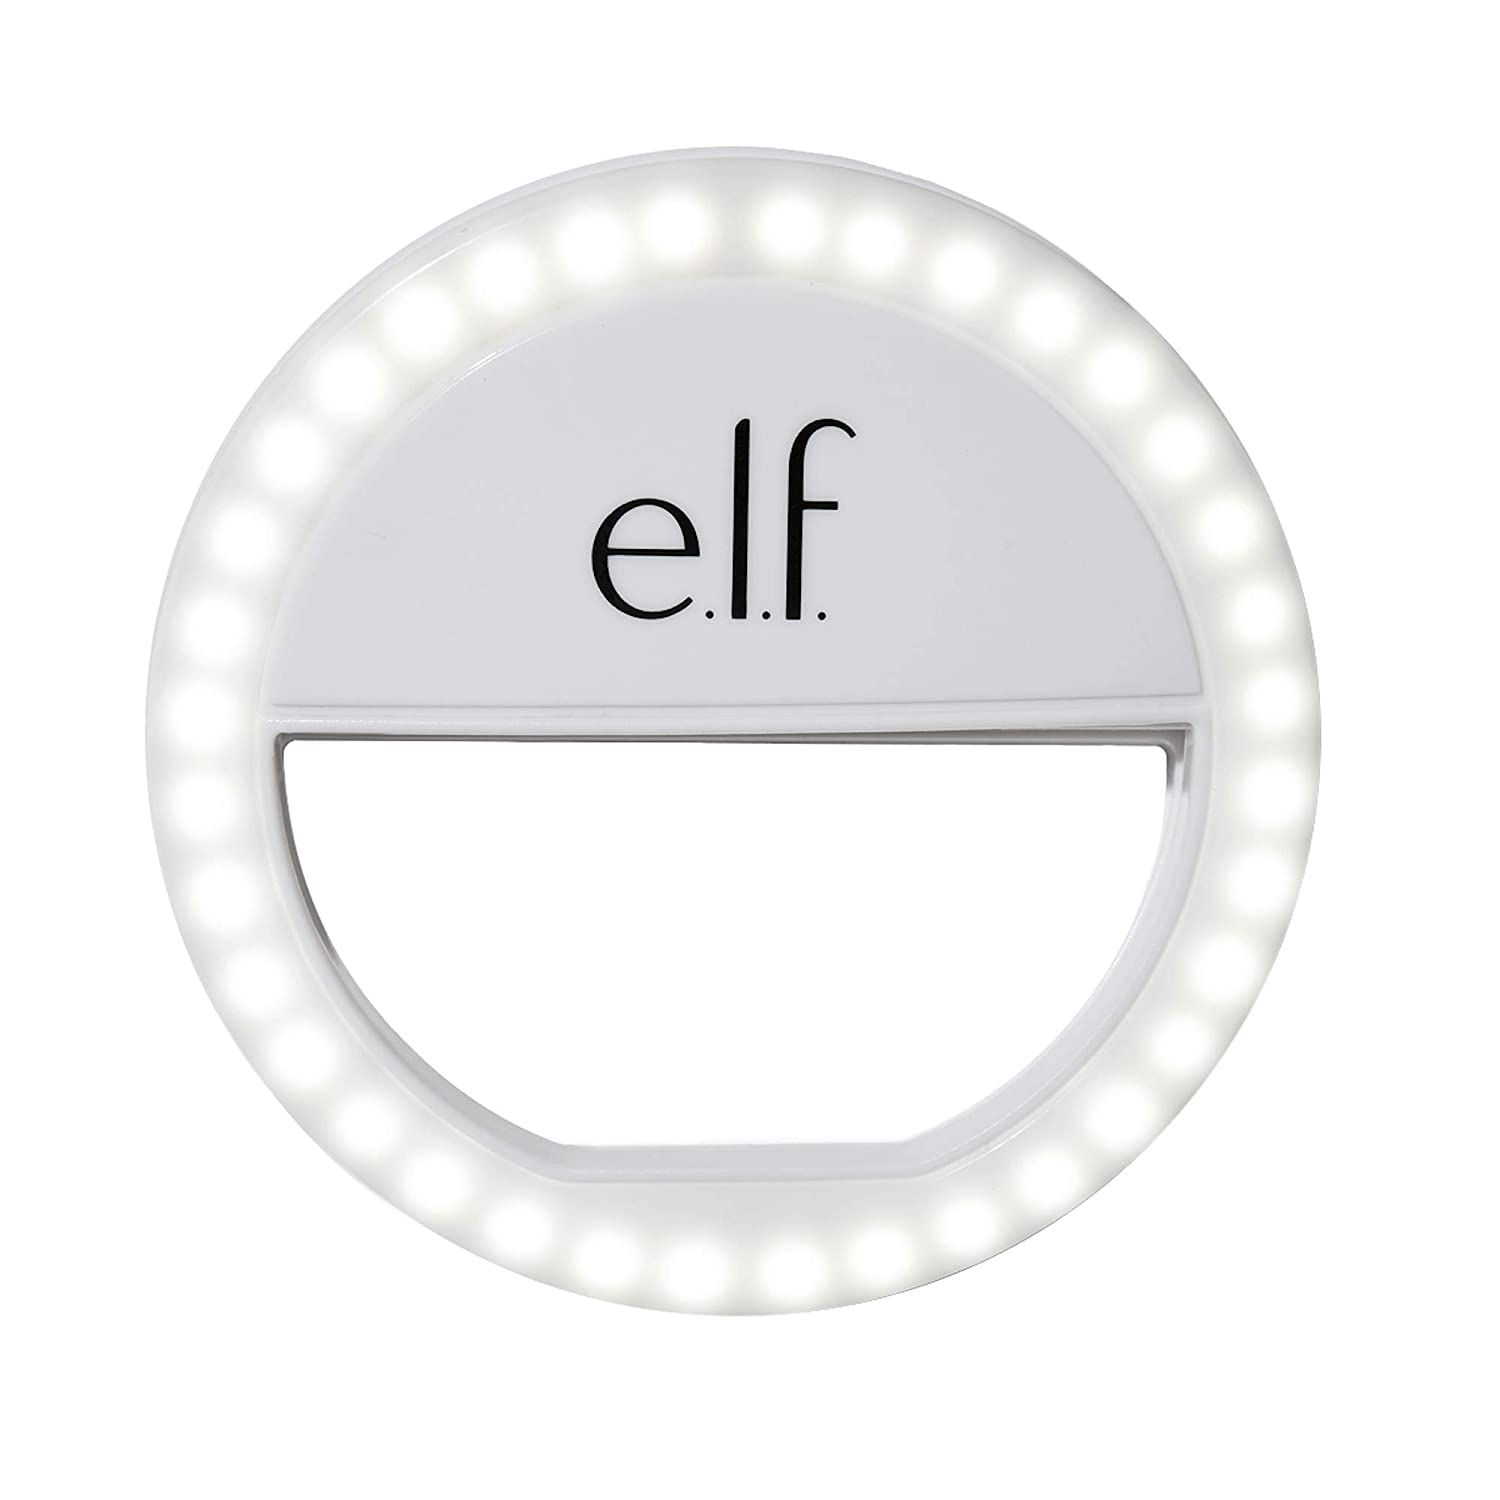 e.l.f, Glow On The Go Selfie Light, Ring Light for Phone, 36 Bulbs, 3 Brightness Levels, Illuminates, Highlights, Creates On-The-Go Photo Studio, 2x AAA Batteries Included